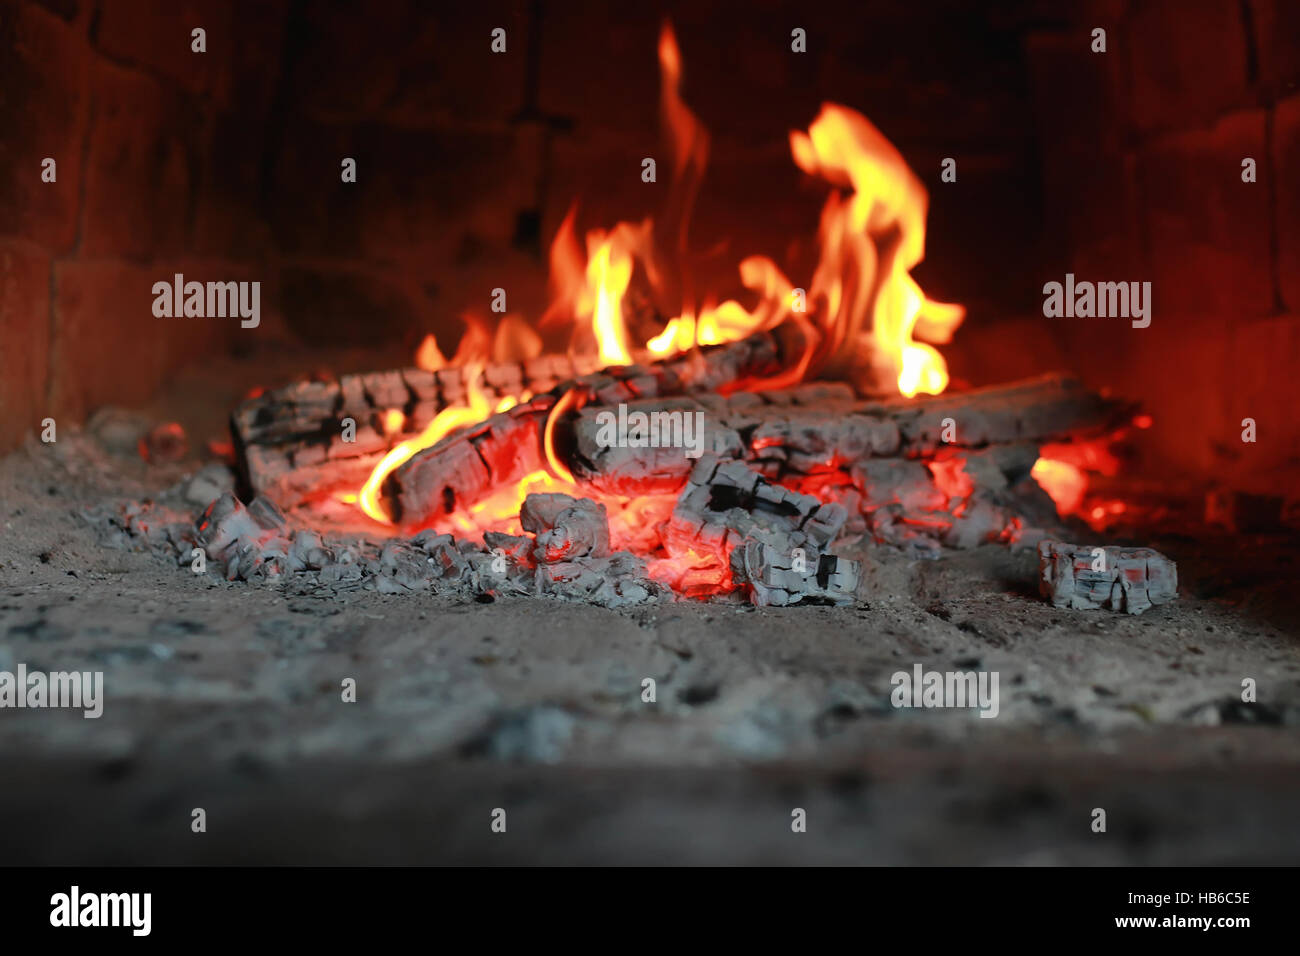 flame fire in the oven - Stock Image